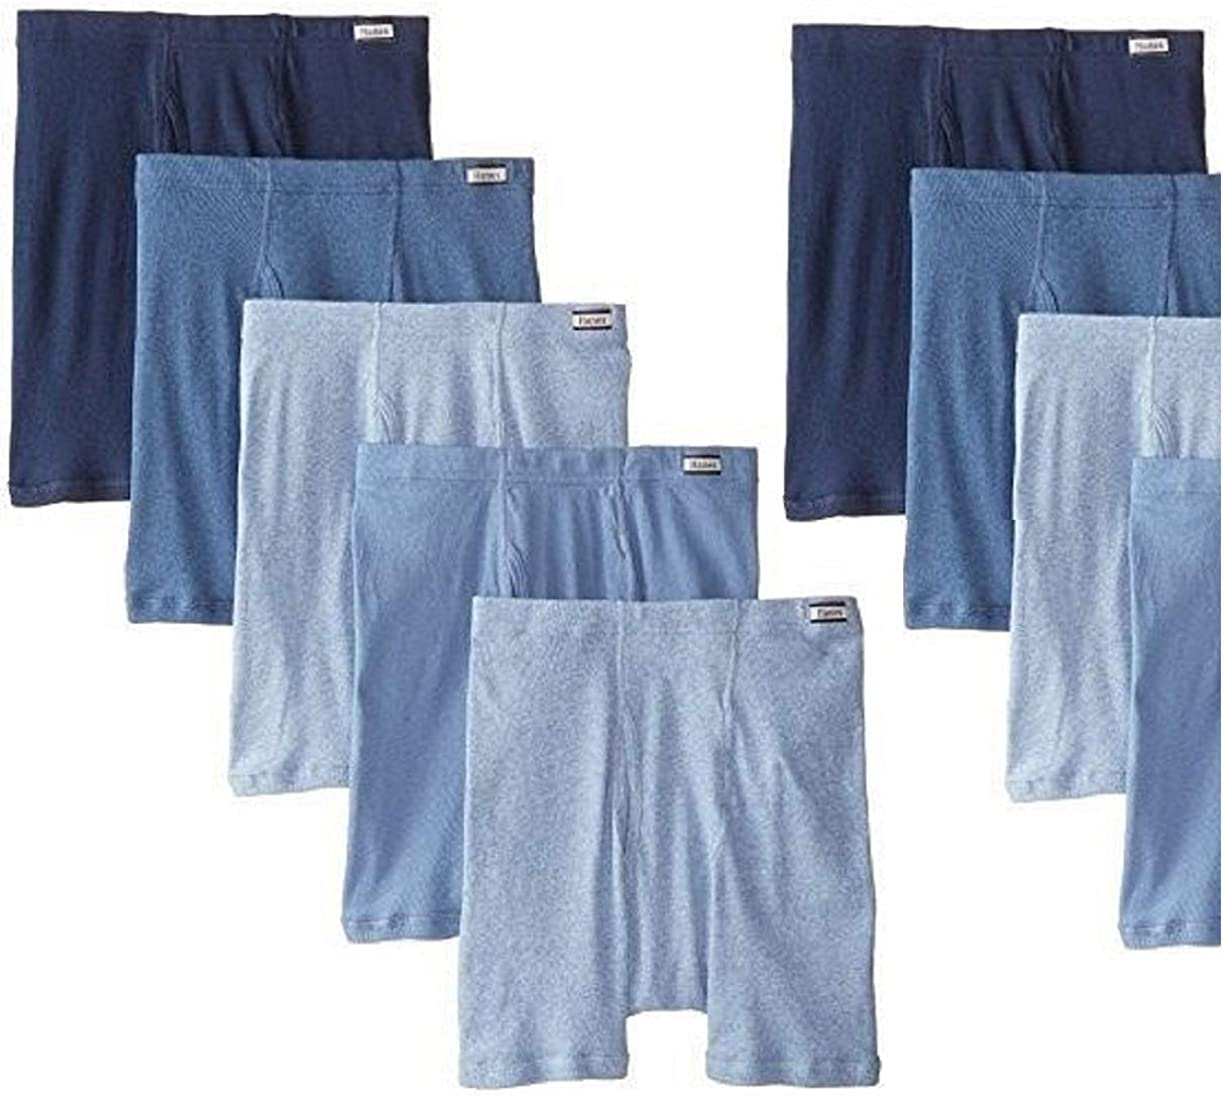 Hanes 9-Pack Men's ComfortSoft Waistband Tagless Boxer Briefs - Assorted Solids/Colors